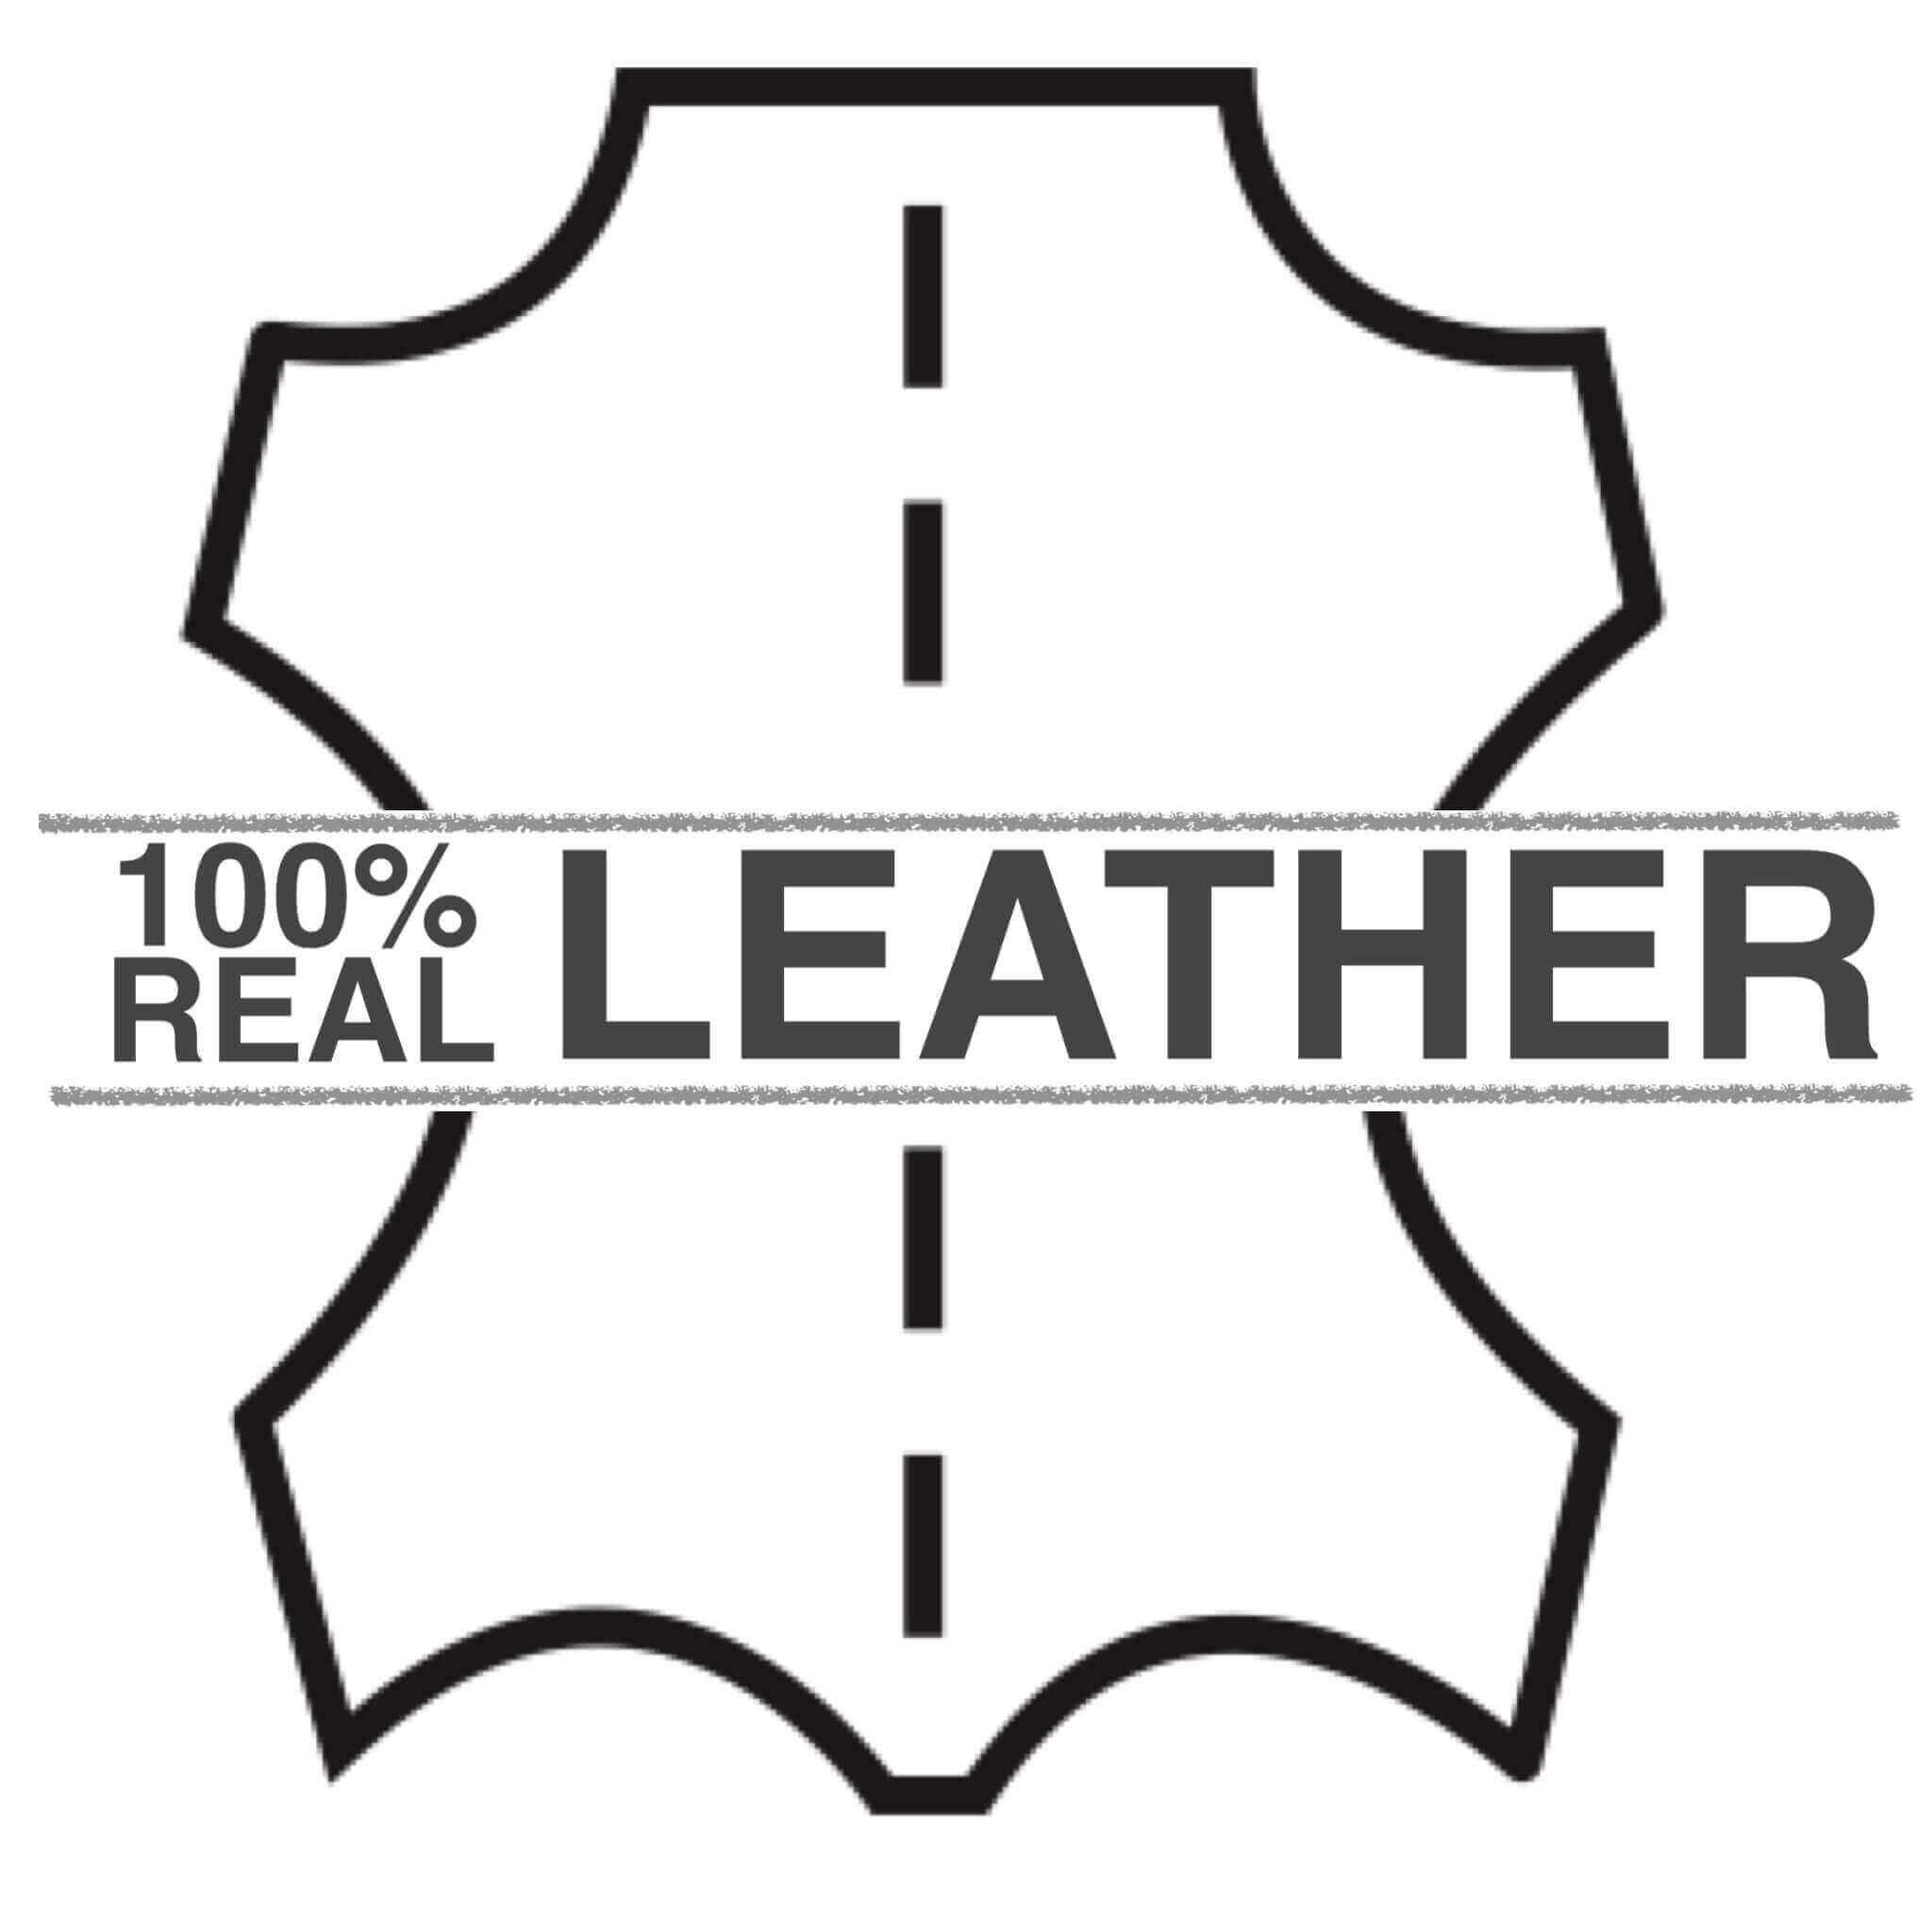 Our dogs premium leather collars are mede with hight quality bovine leather because we believe your dog deserves the best